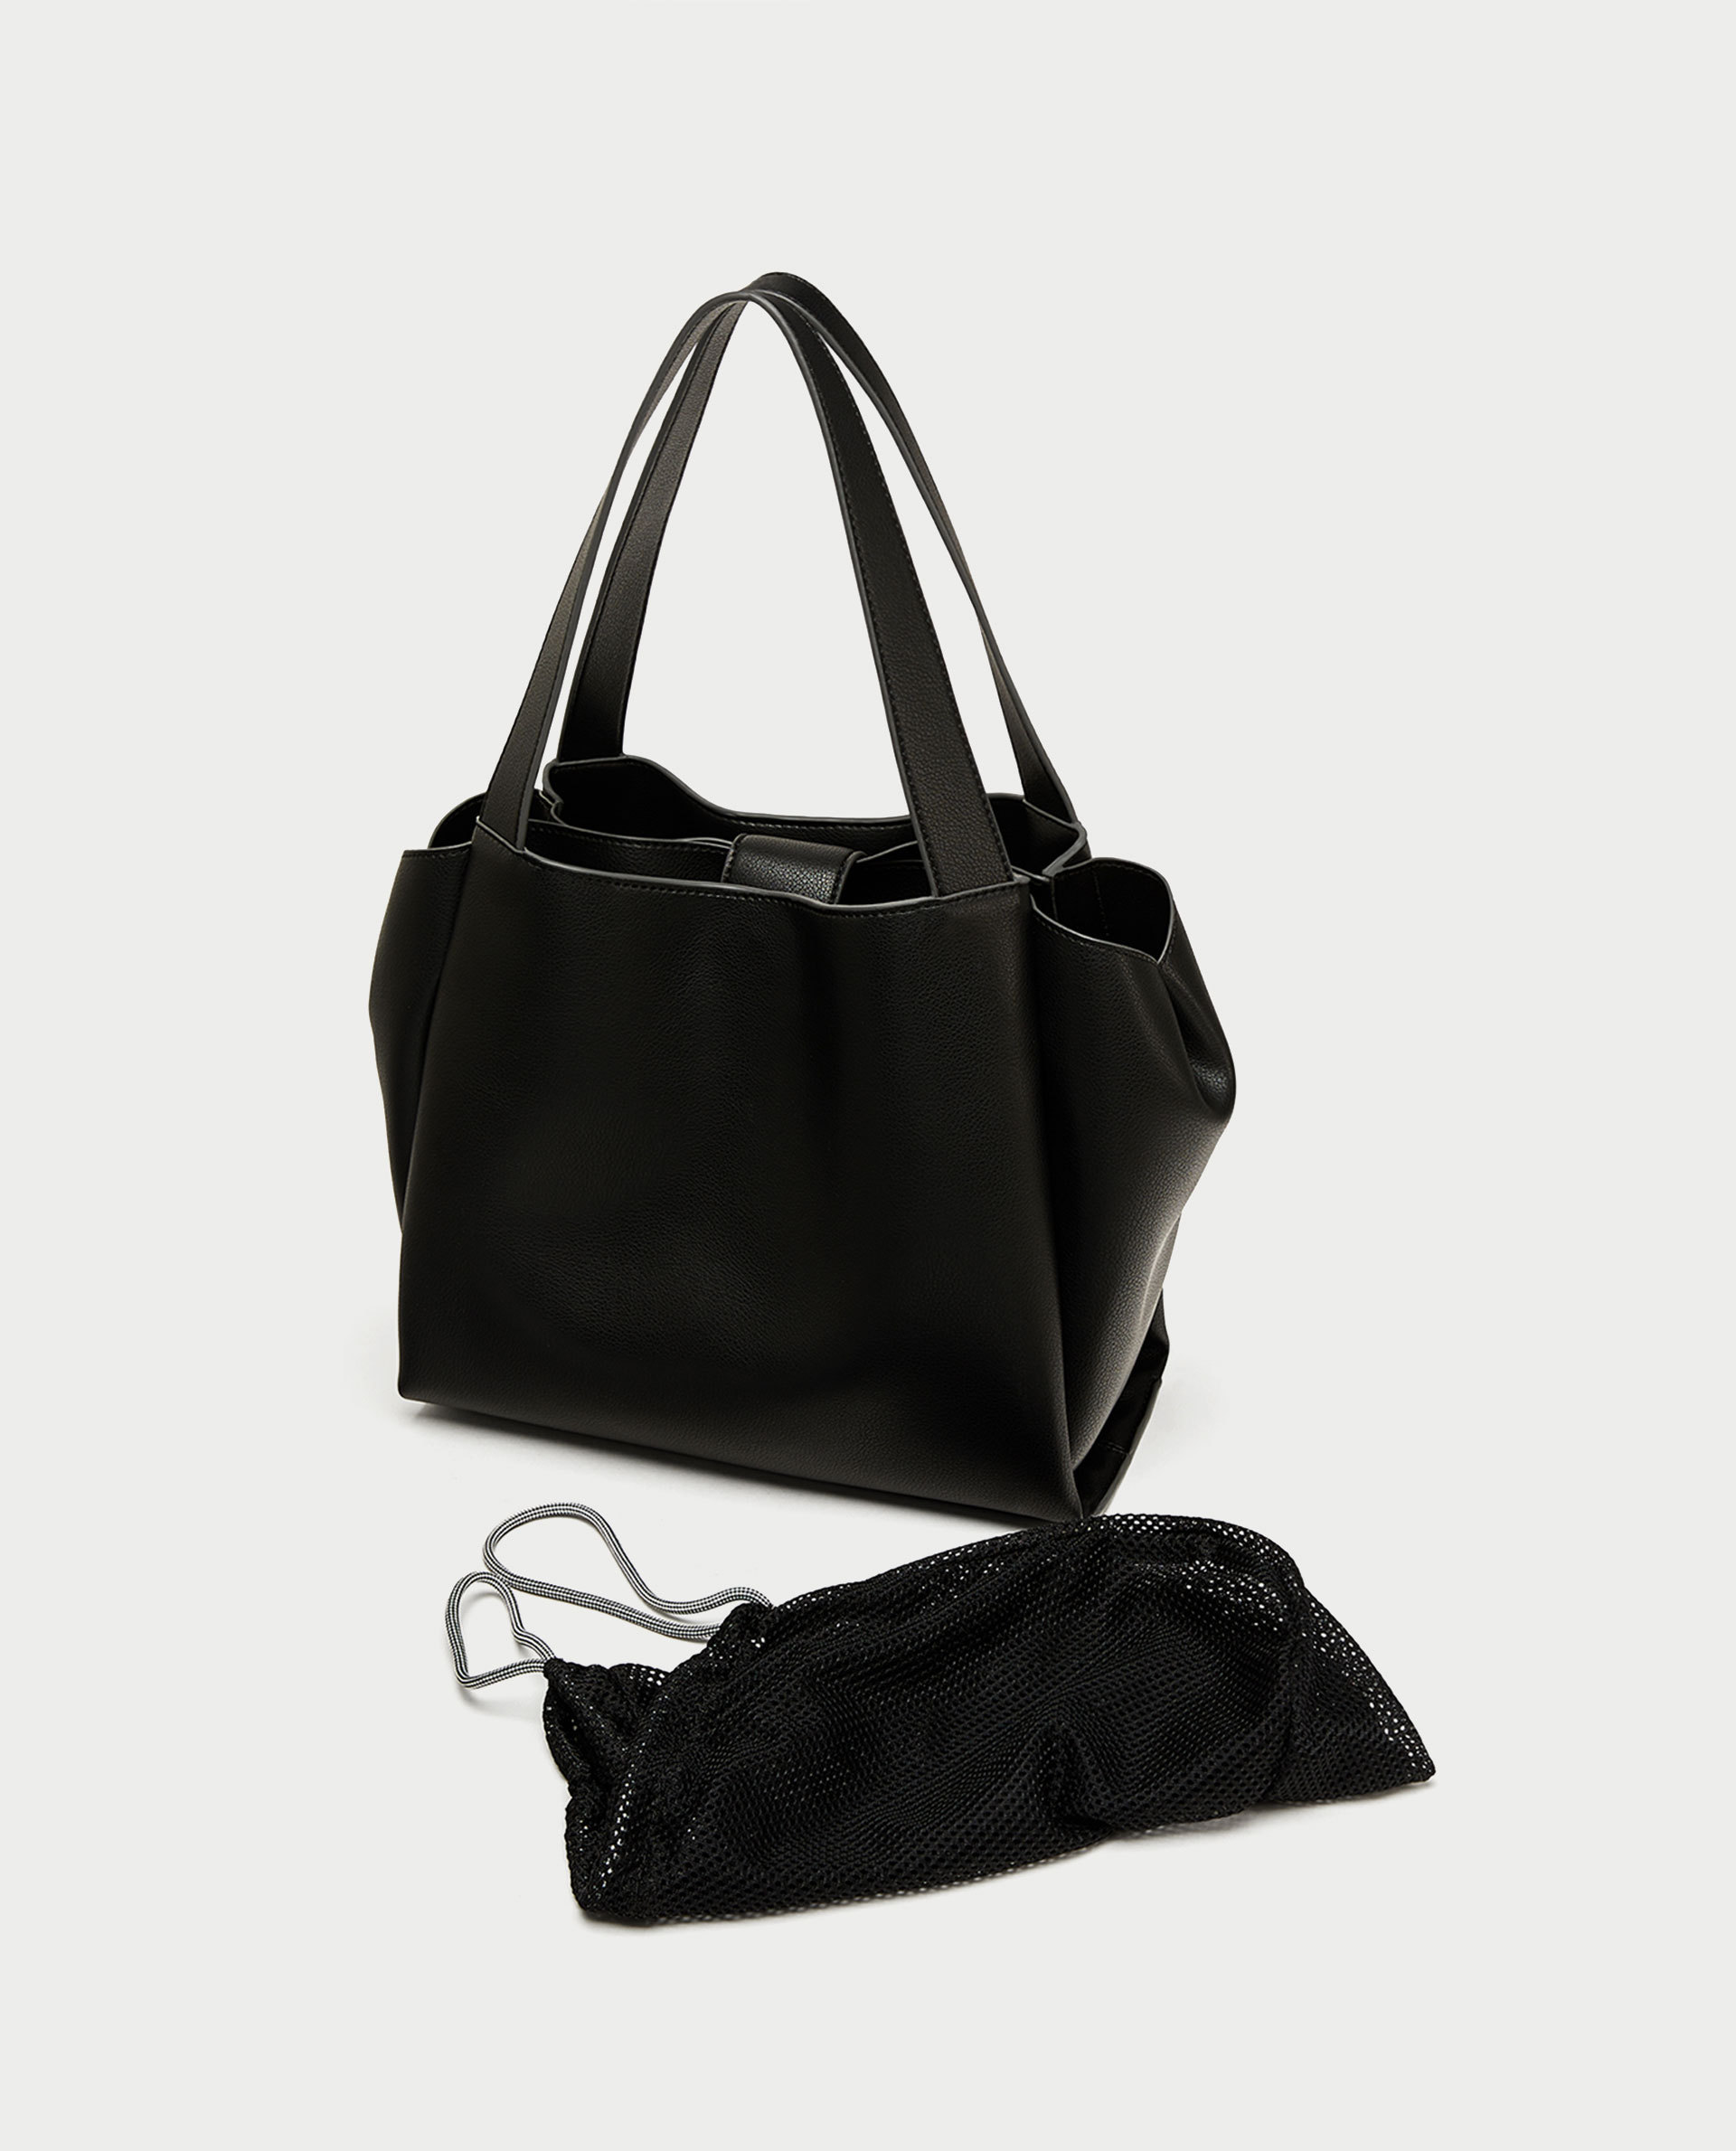 ●ZARA●秋新作♪TOTE WITH INTERIOR BAG